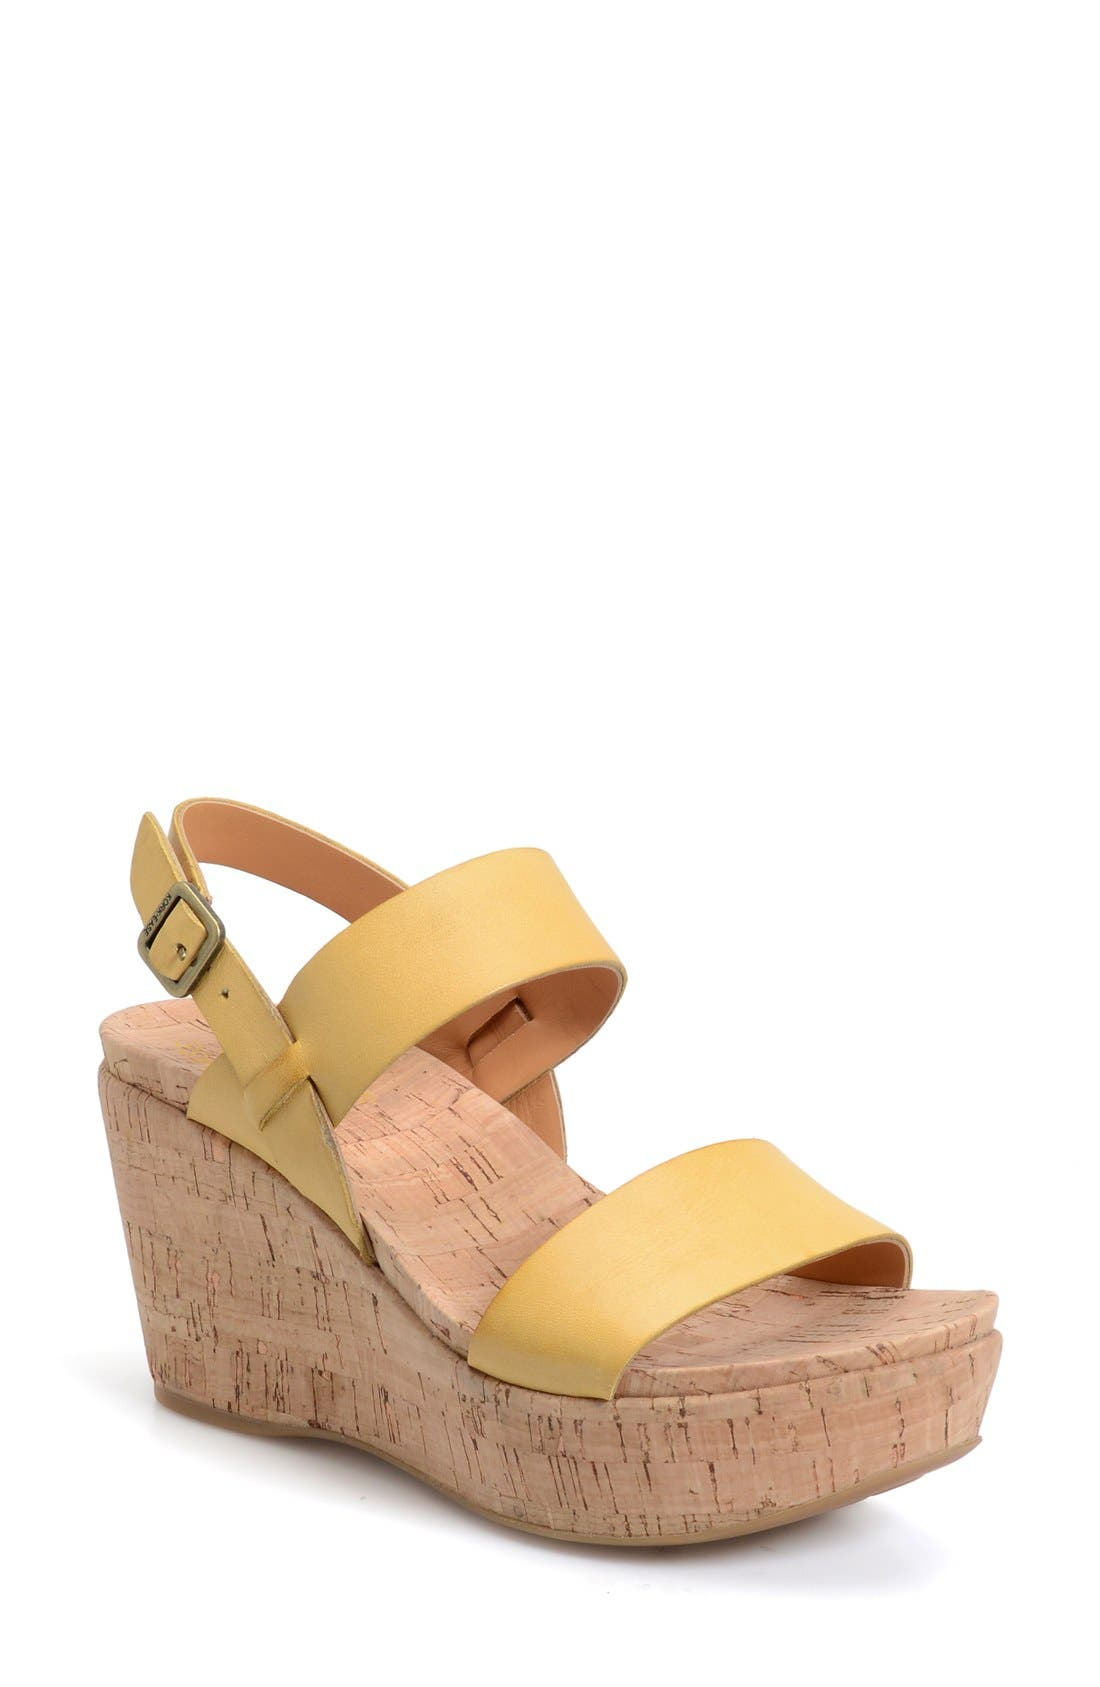 Alternate Image 1 Selected - Kork-Ease® 'Austin' Slingback Wedge Sandal (Women)